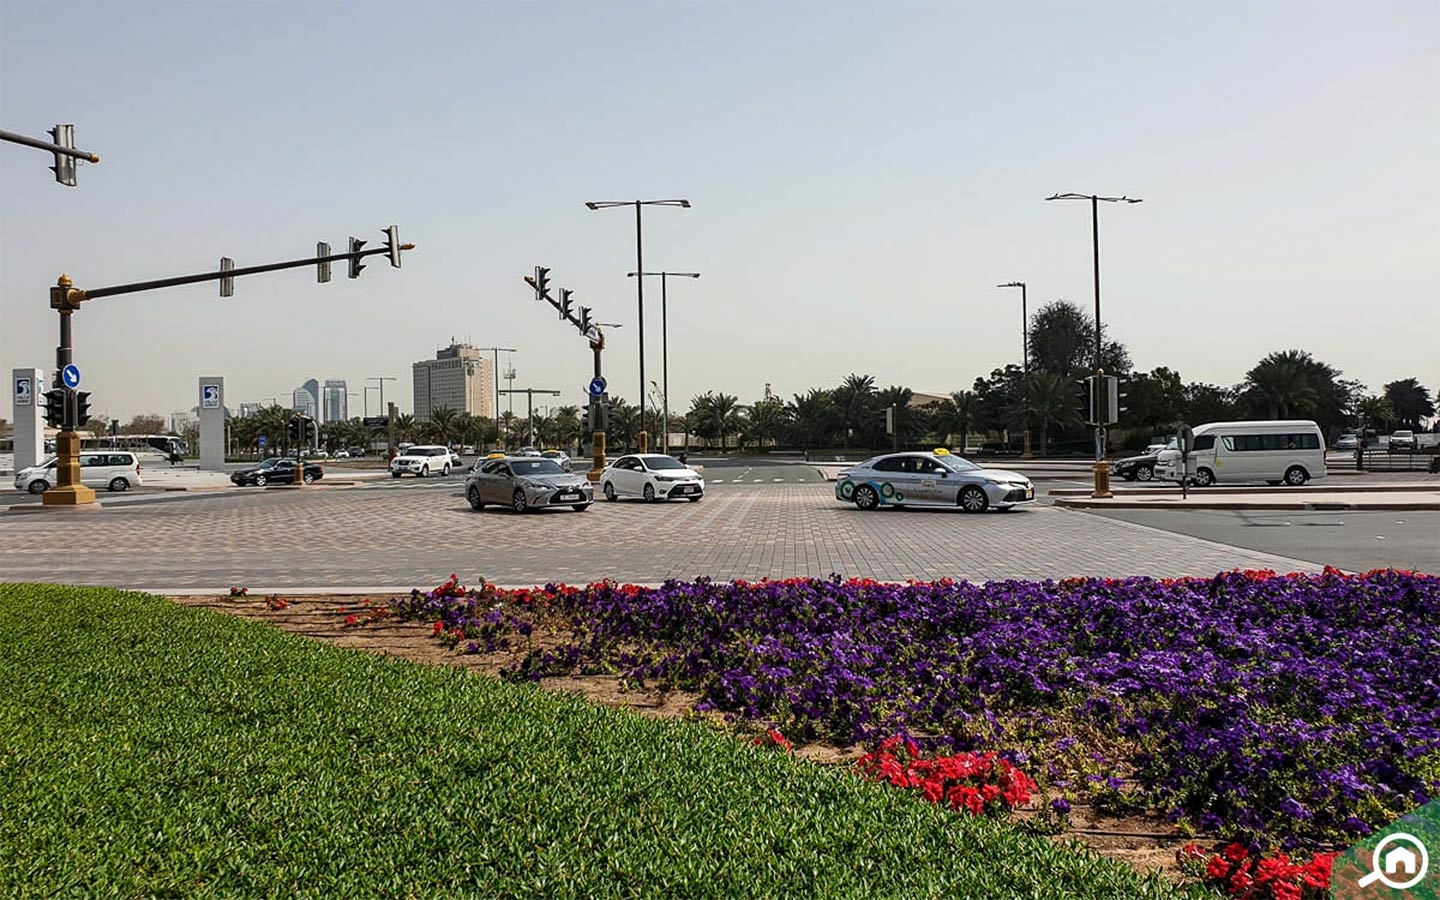 Traffic intersection in Abu Dhabi with cars and taxis